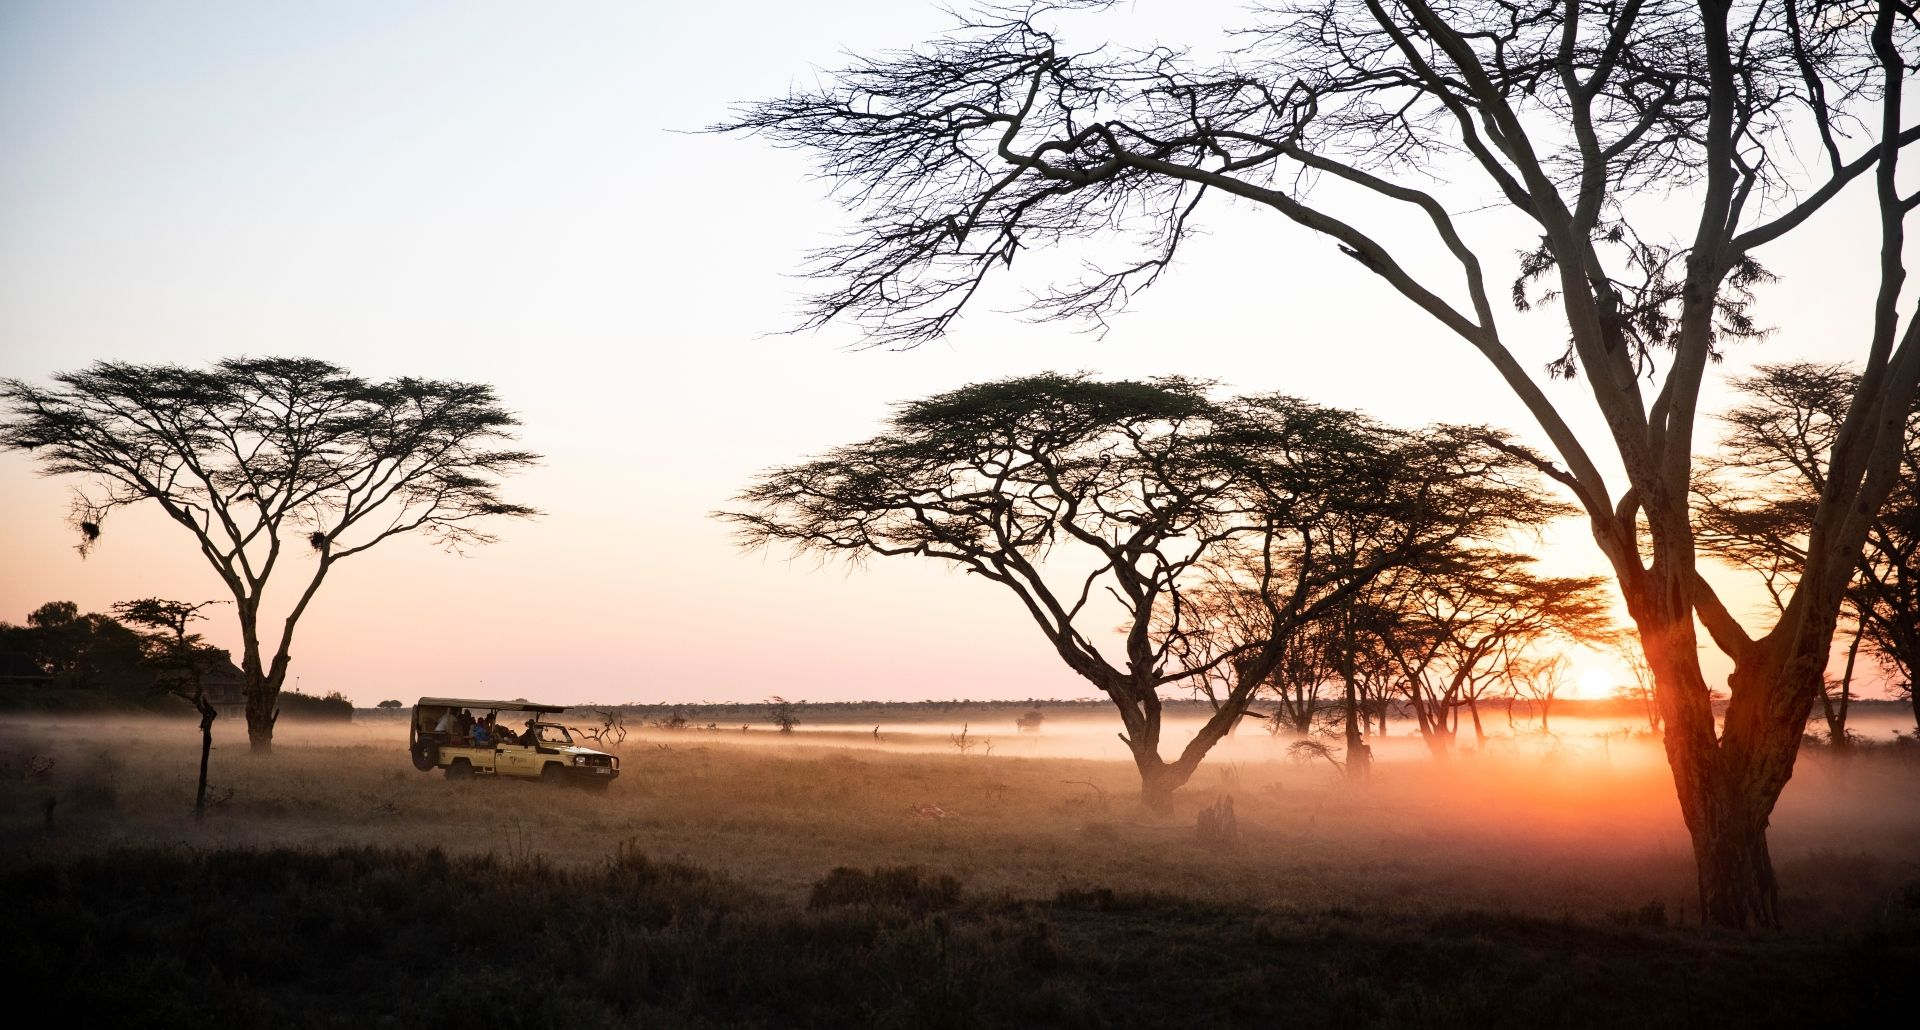 Dawn game drive in the mist